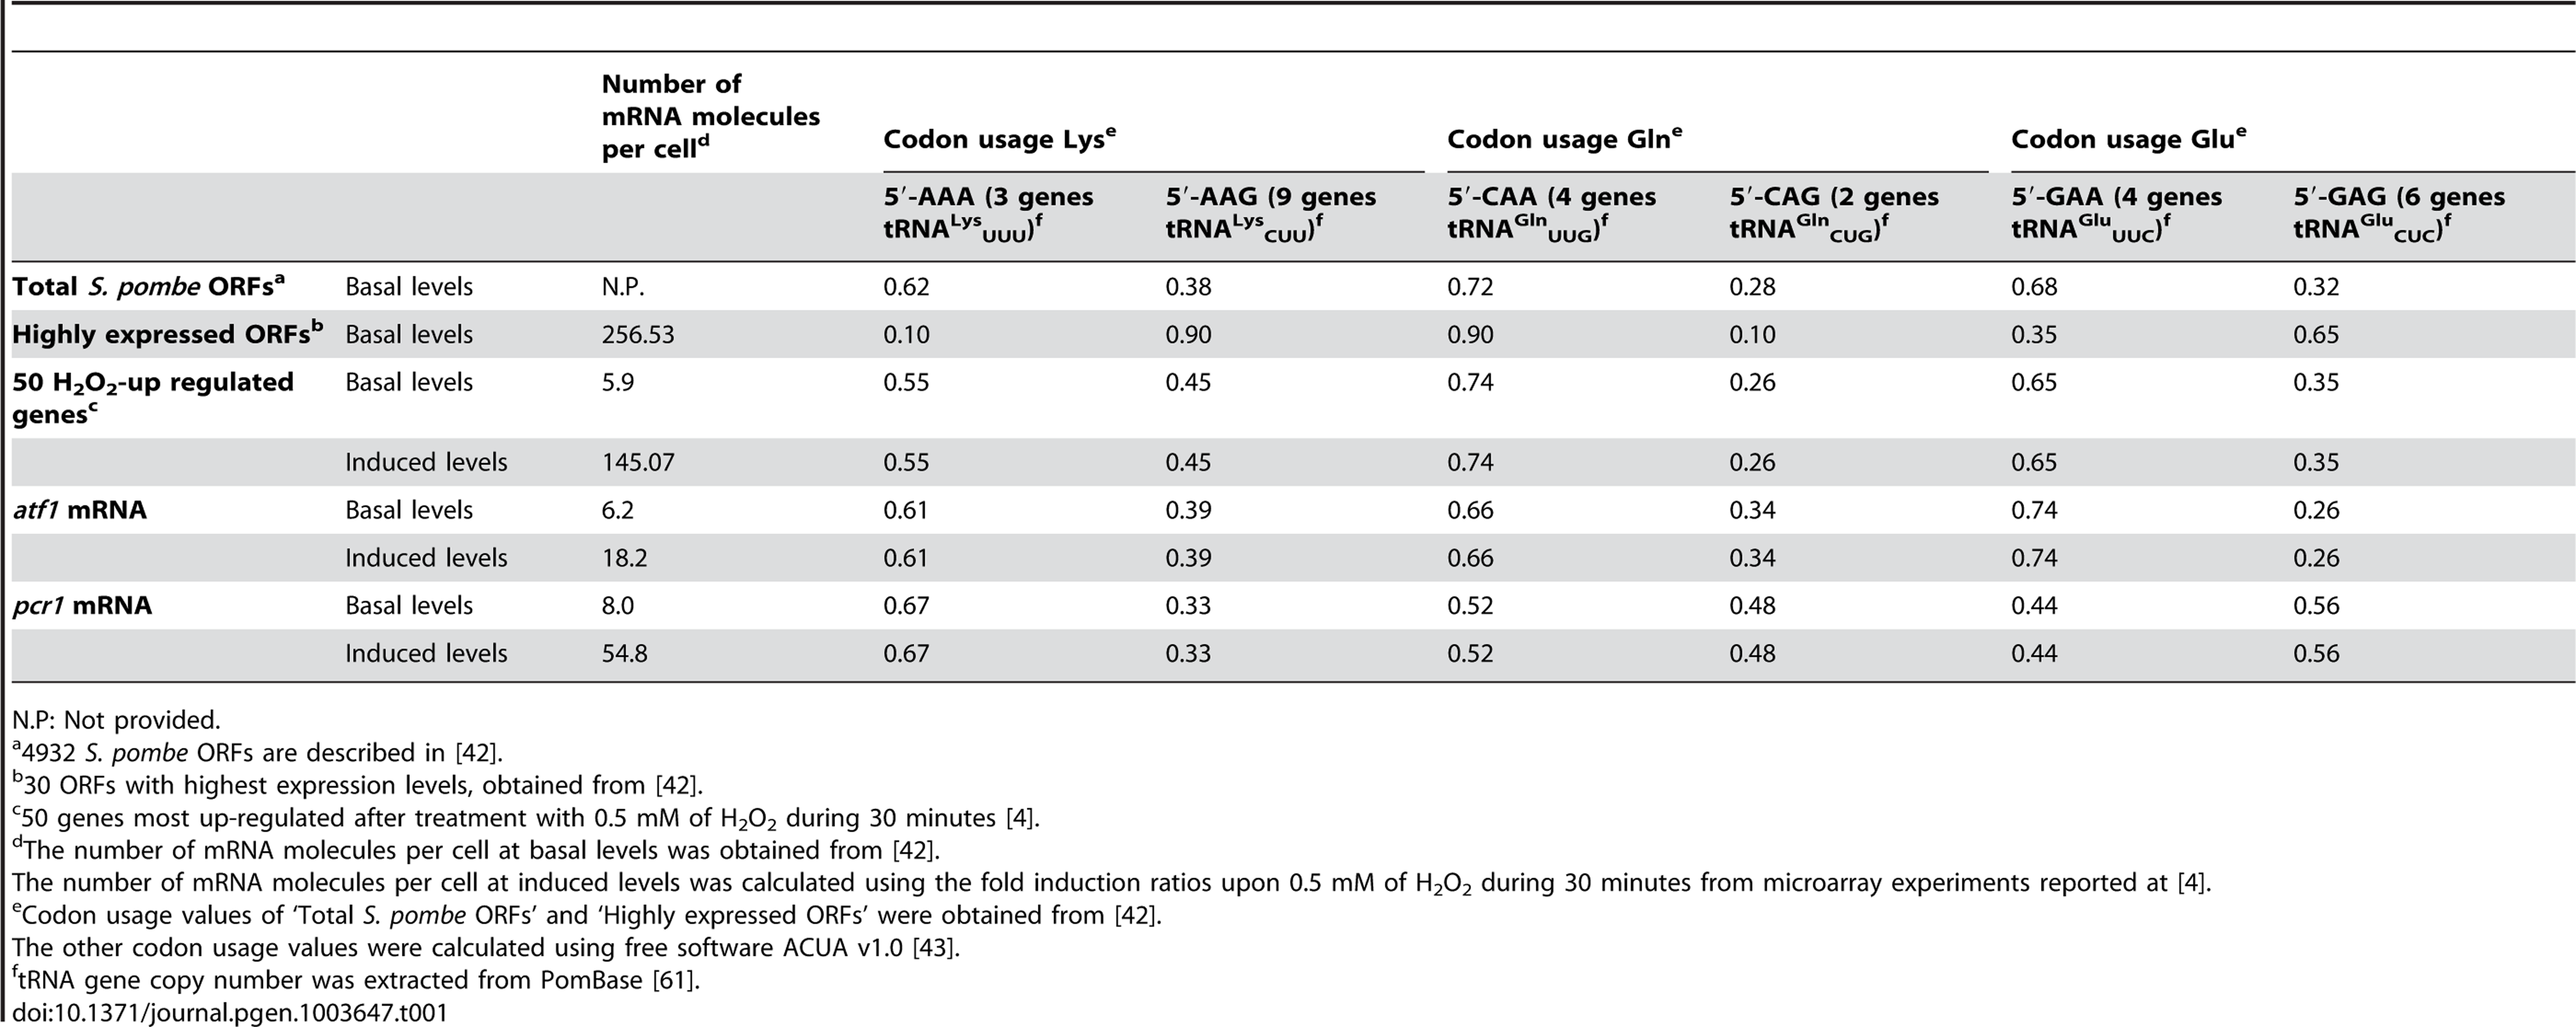 Codon usage and <i>tRNA</i> gene copy number for Lys, Gln and Glu.